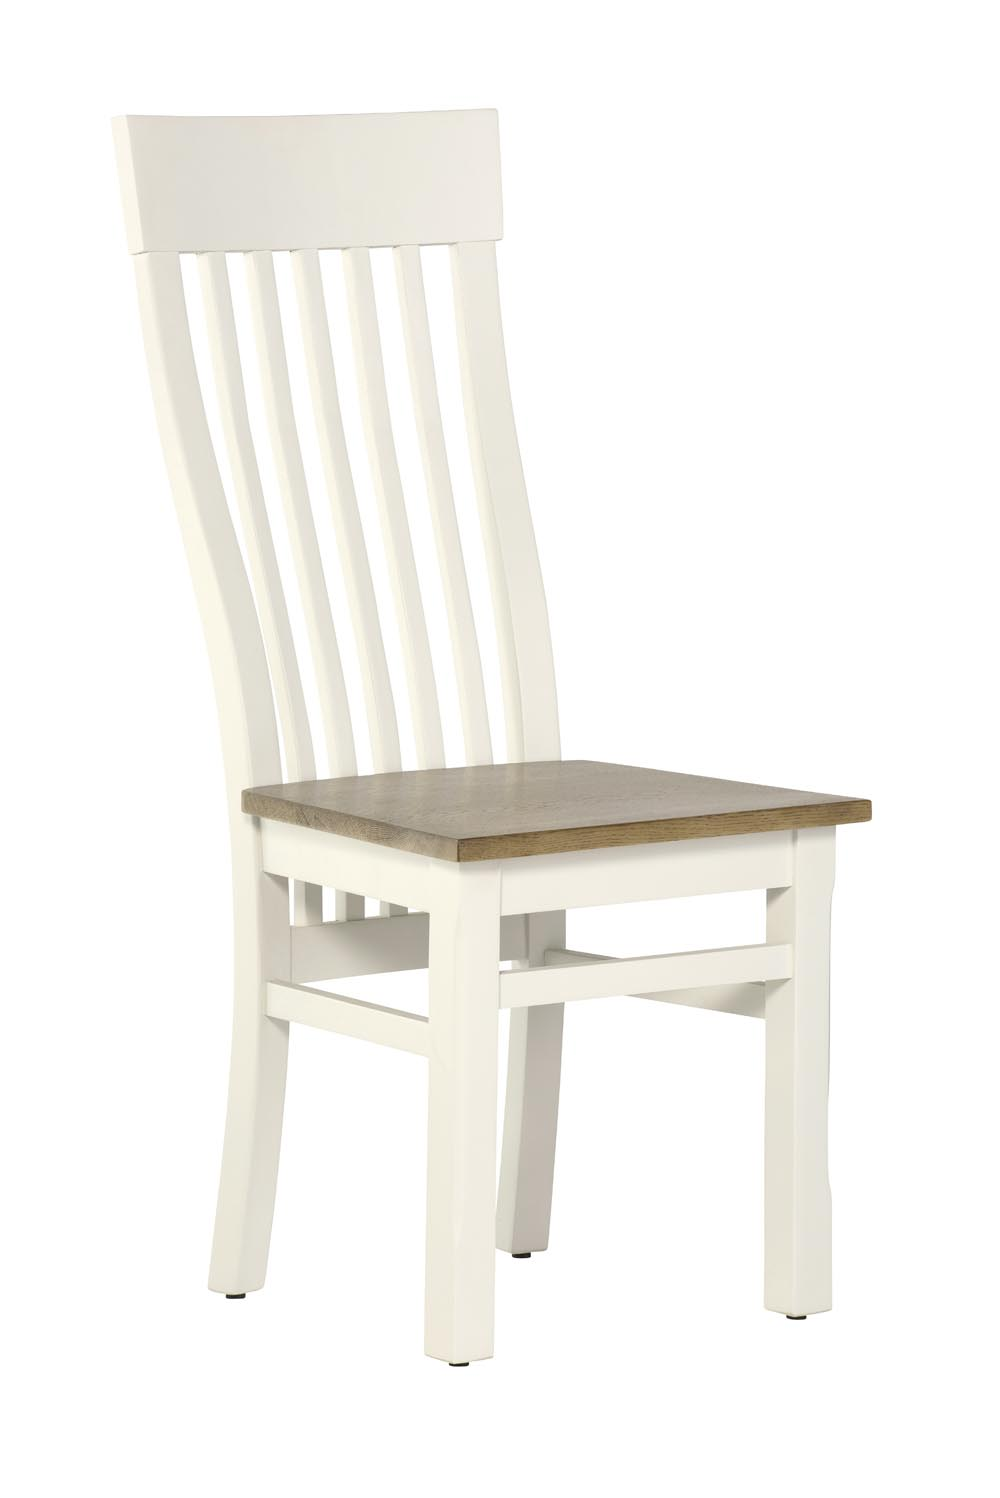 https://www.firstfurniture.co.uk/pub/media/catalog/product/b/o/bord04.jpg